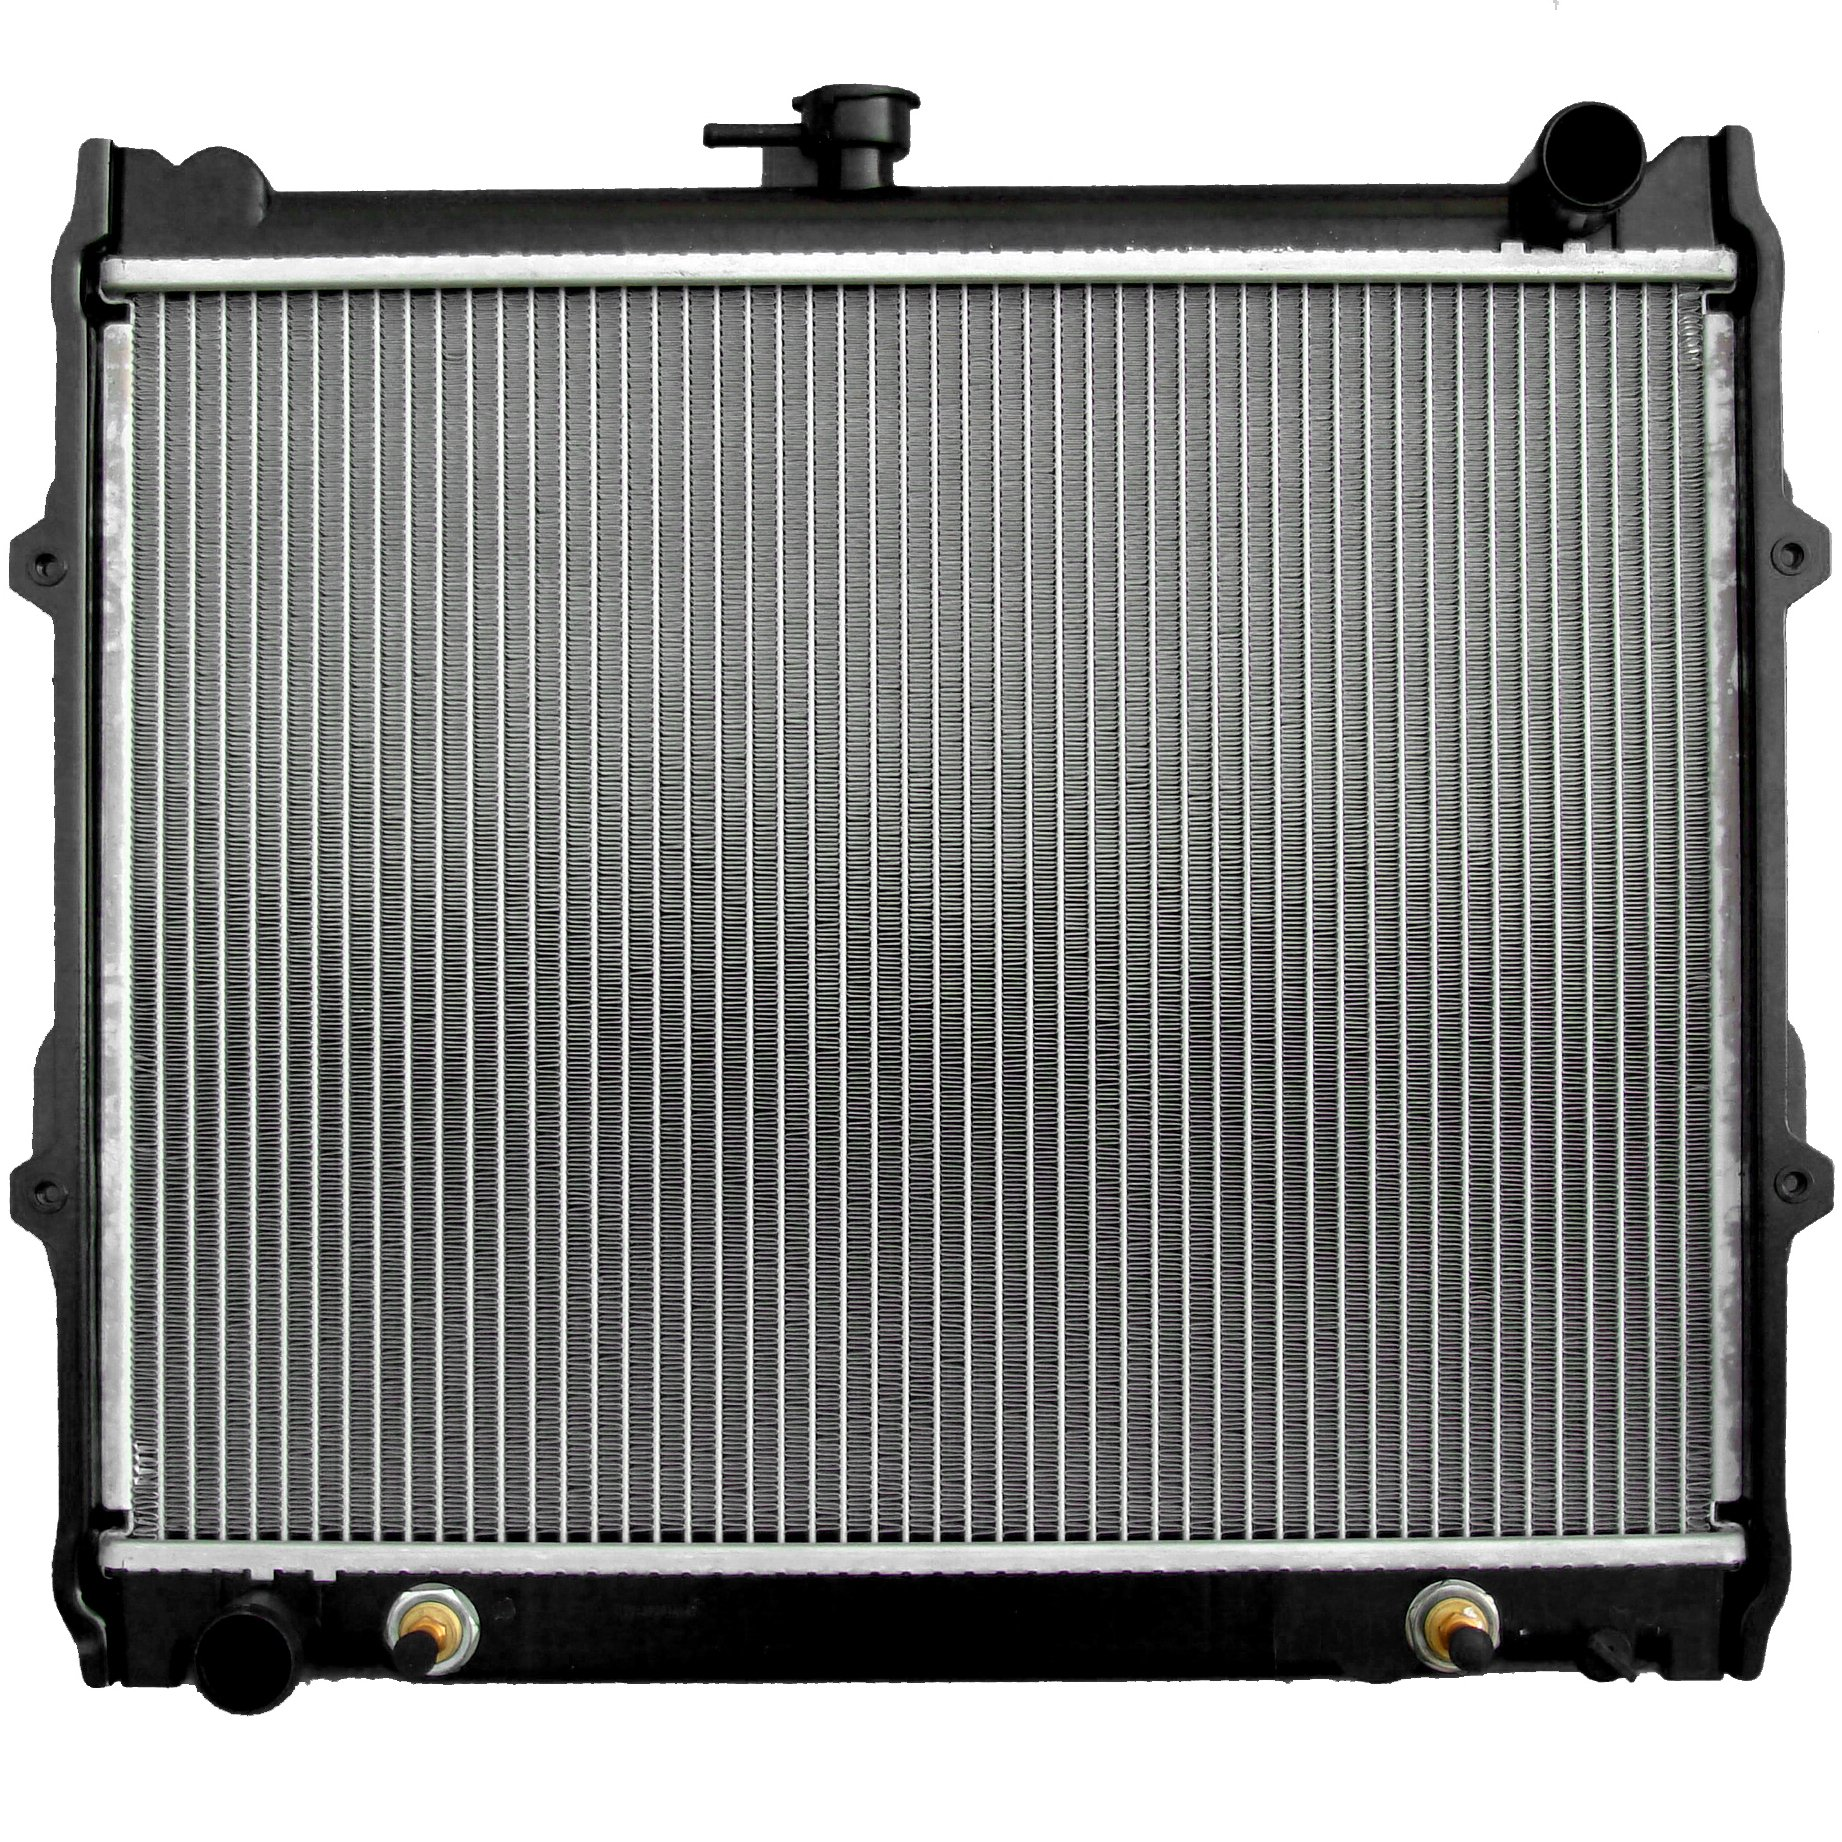 ECCPP 0945 Radiator fits for 1986-1995 Toyota Pickup Standard/Extended Cab Pickup 2-Door 2.4L 1986-1993 Toyota Pickup Cab andamp; Chassis 2-Door 2.4L